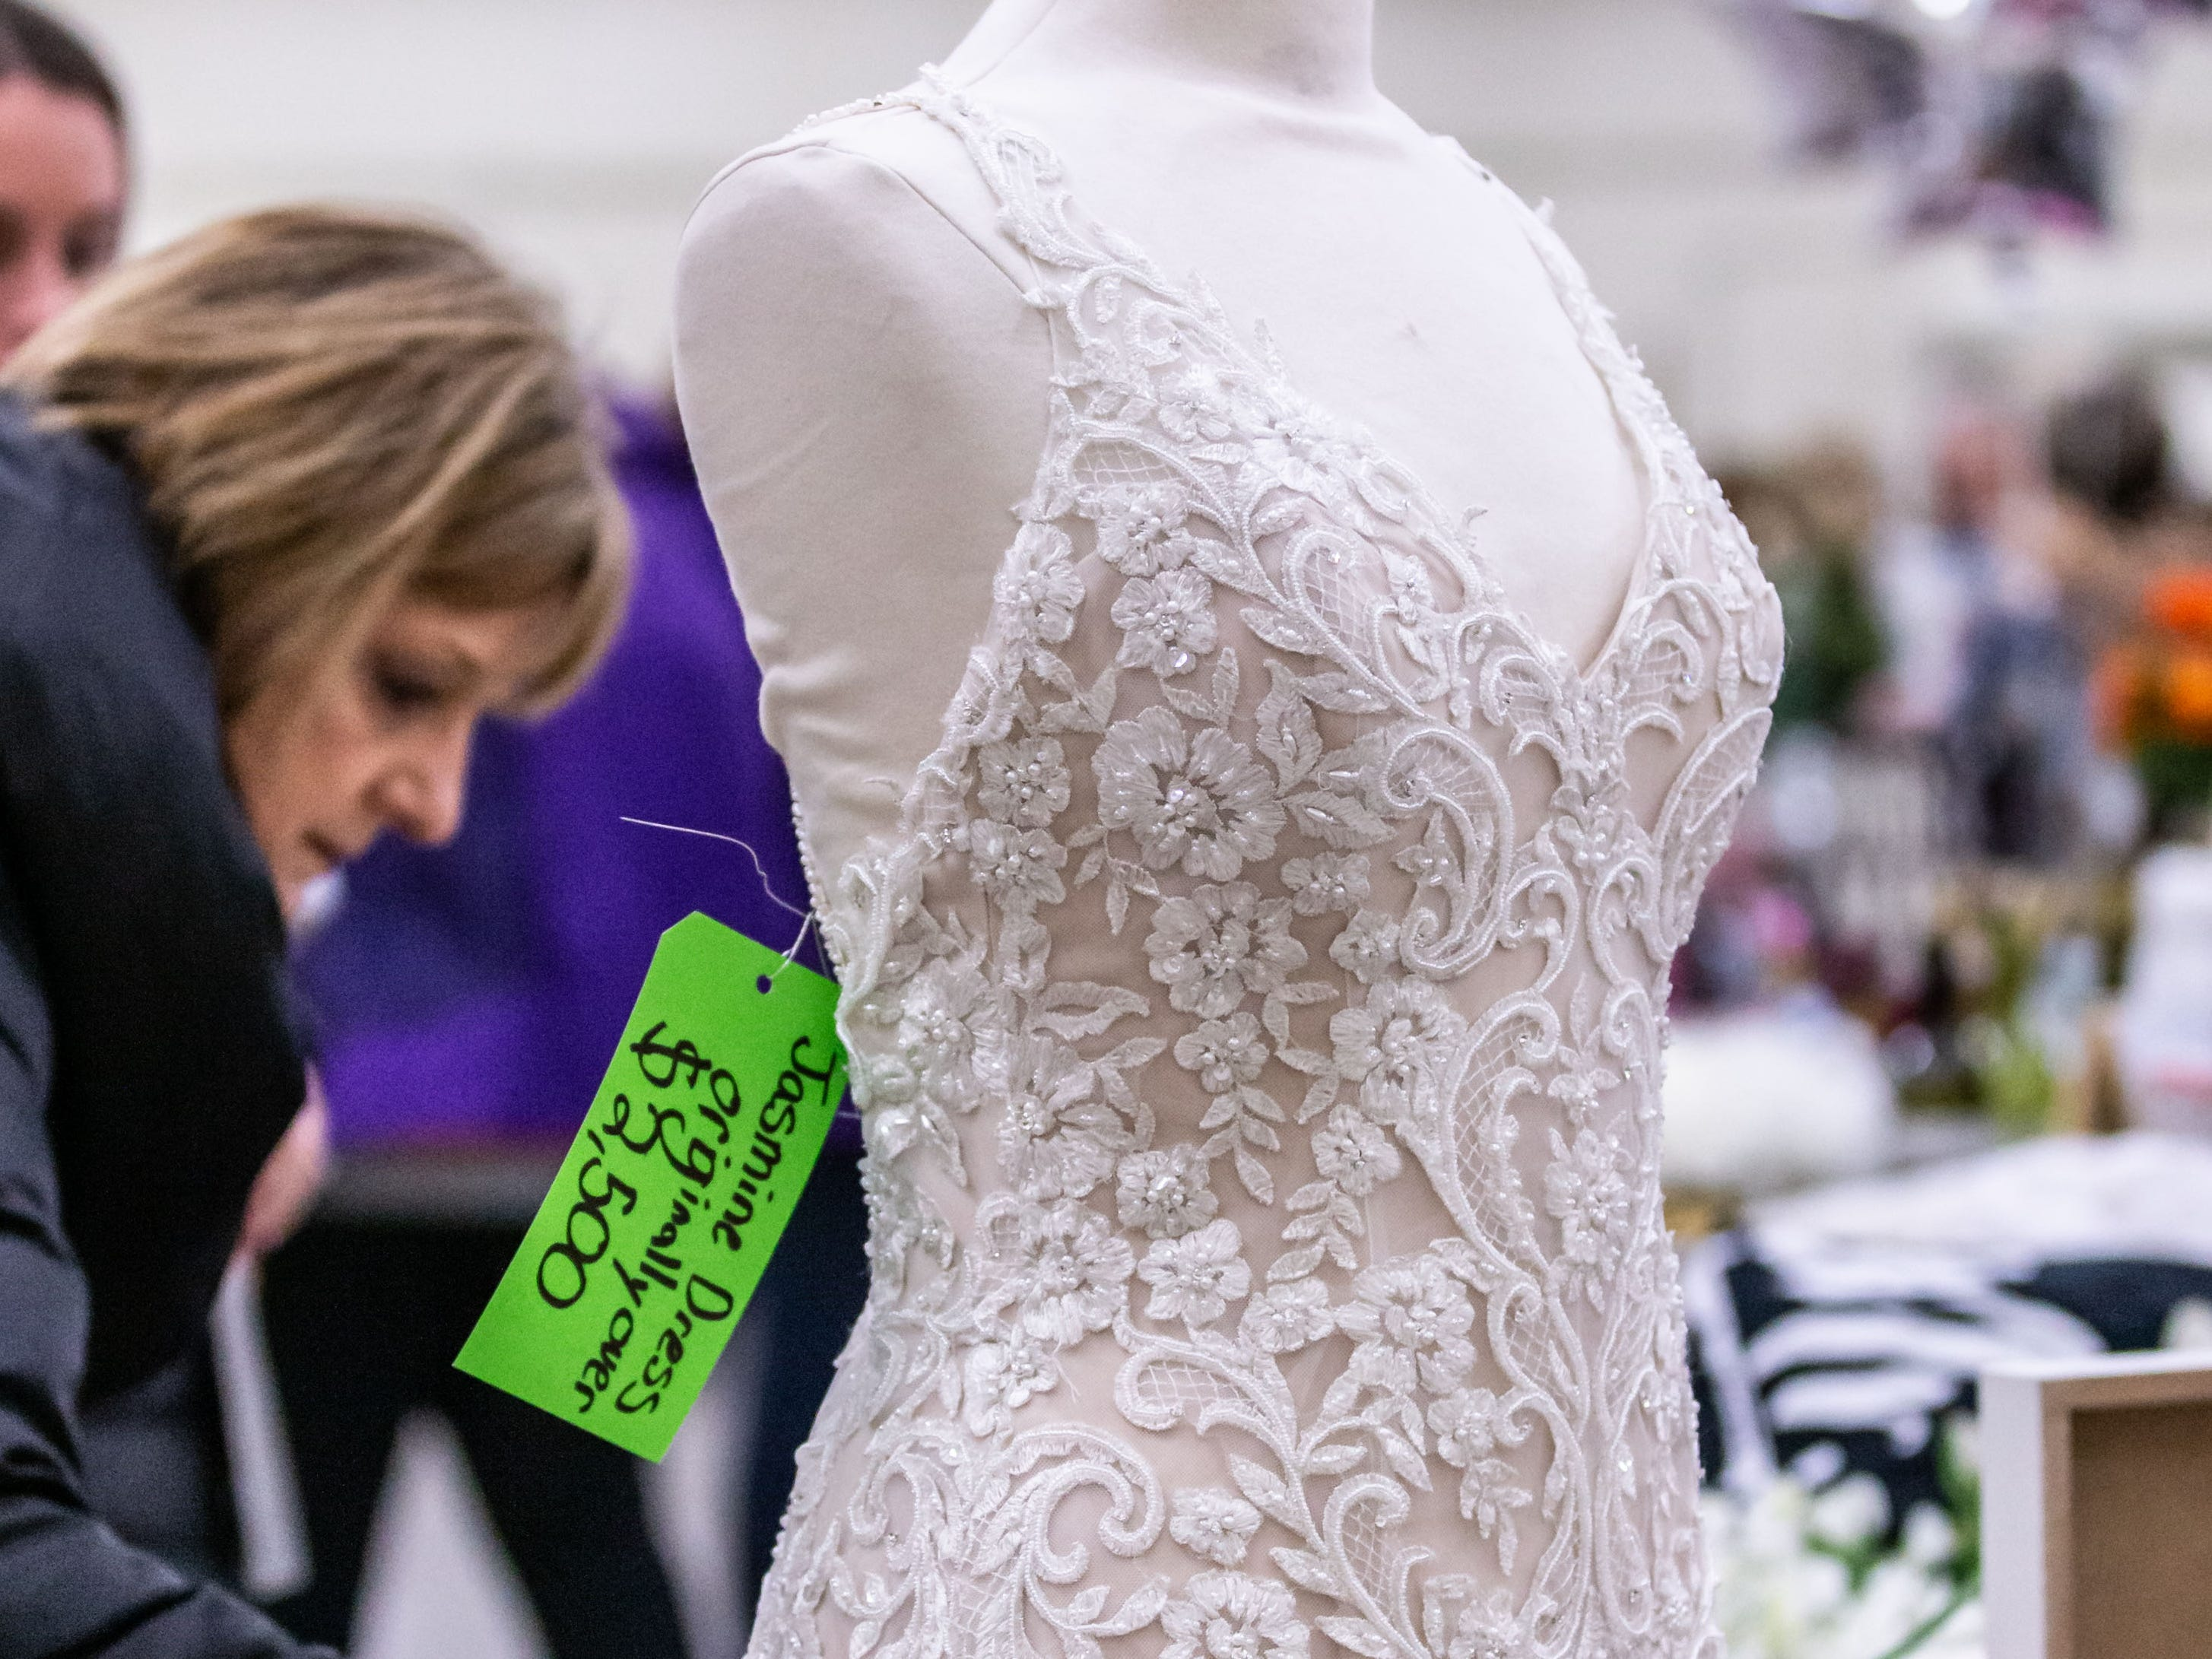 Gently used wedding decor, dresses, attire and other wedding related items were available for a significant discount during The Original Bridal-Wedding Decor Re-Sale hosted by Rustic Manor 1848 at the Waukesha County Expo Center on Sunday, March 10, 2019.